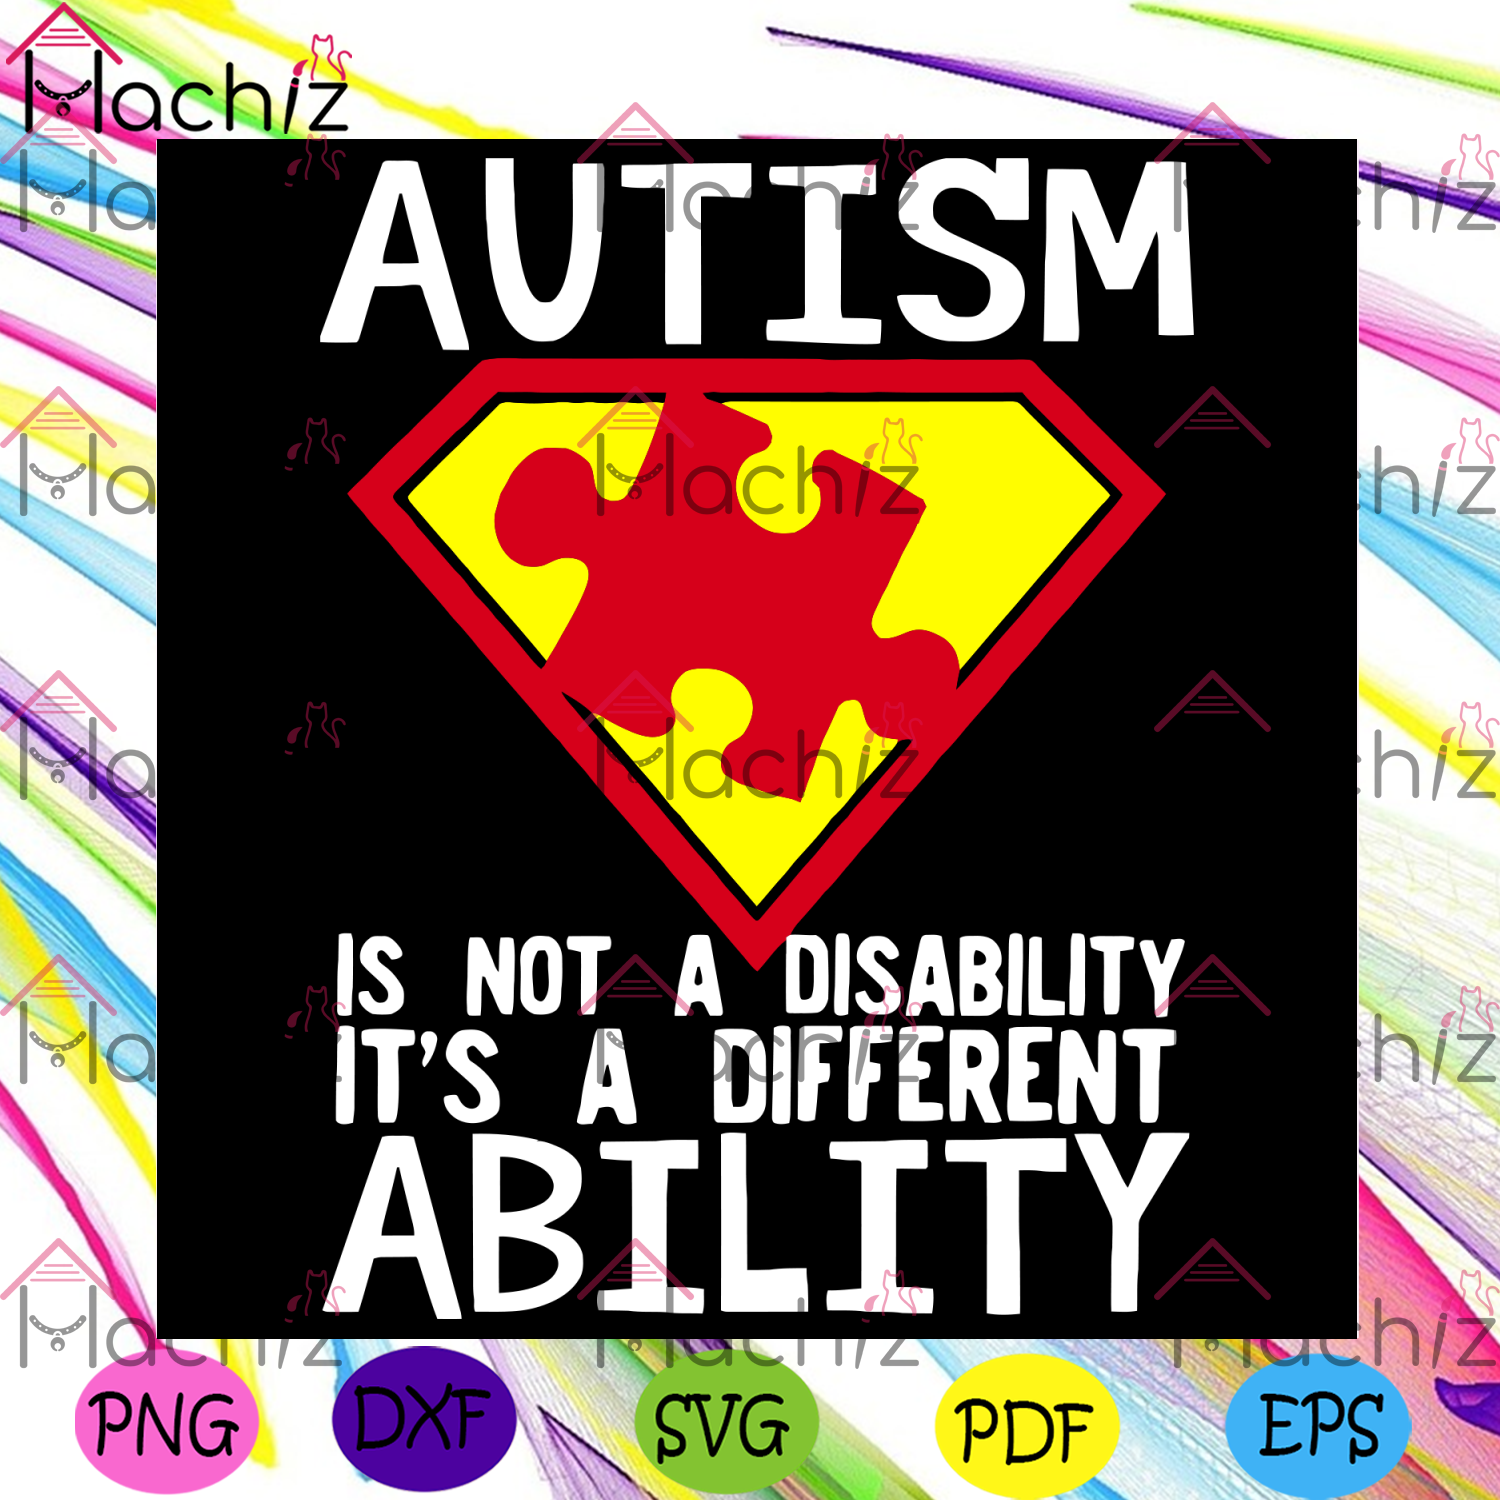 Autism Is Not A Disability Svg, Autism Svg, Autism Awareness Svg, Autism Love, Autism Quote Svg, Different Ability Svg, Autism Quote Gift, Autism Awareness Gift, Autism Awareness Shirt, Svg Cricut, Silhouette Svg Files